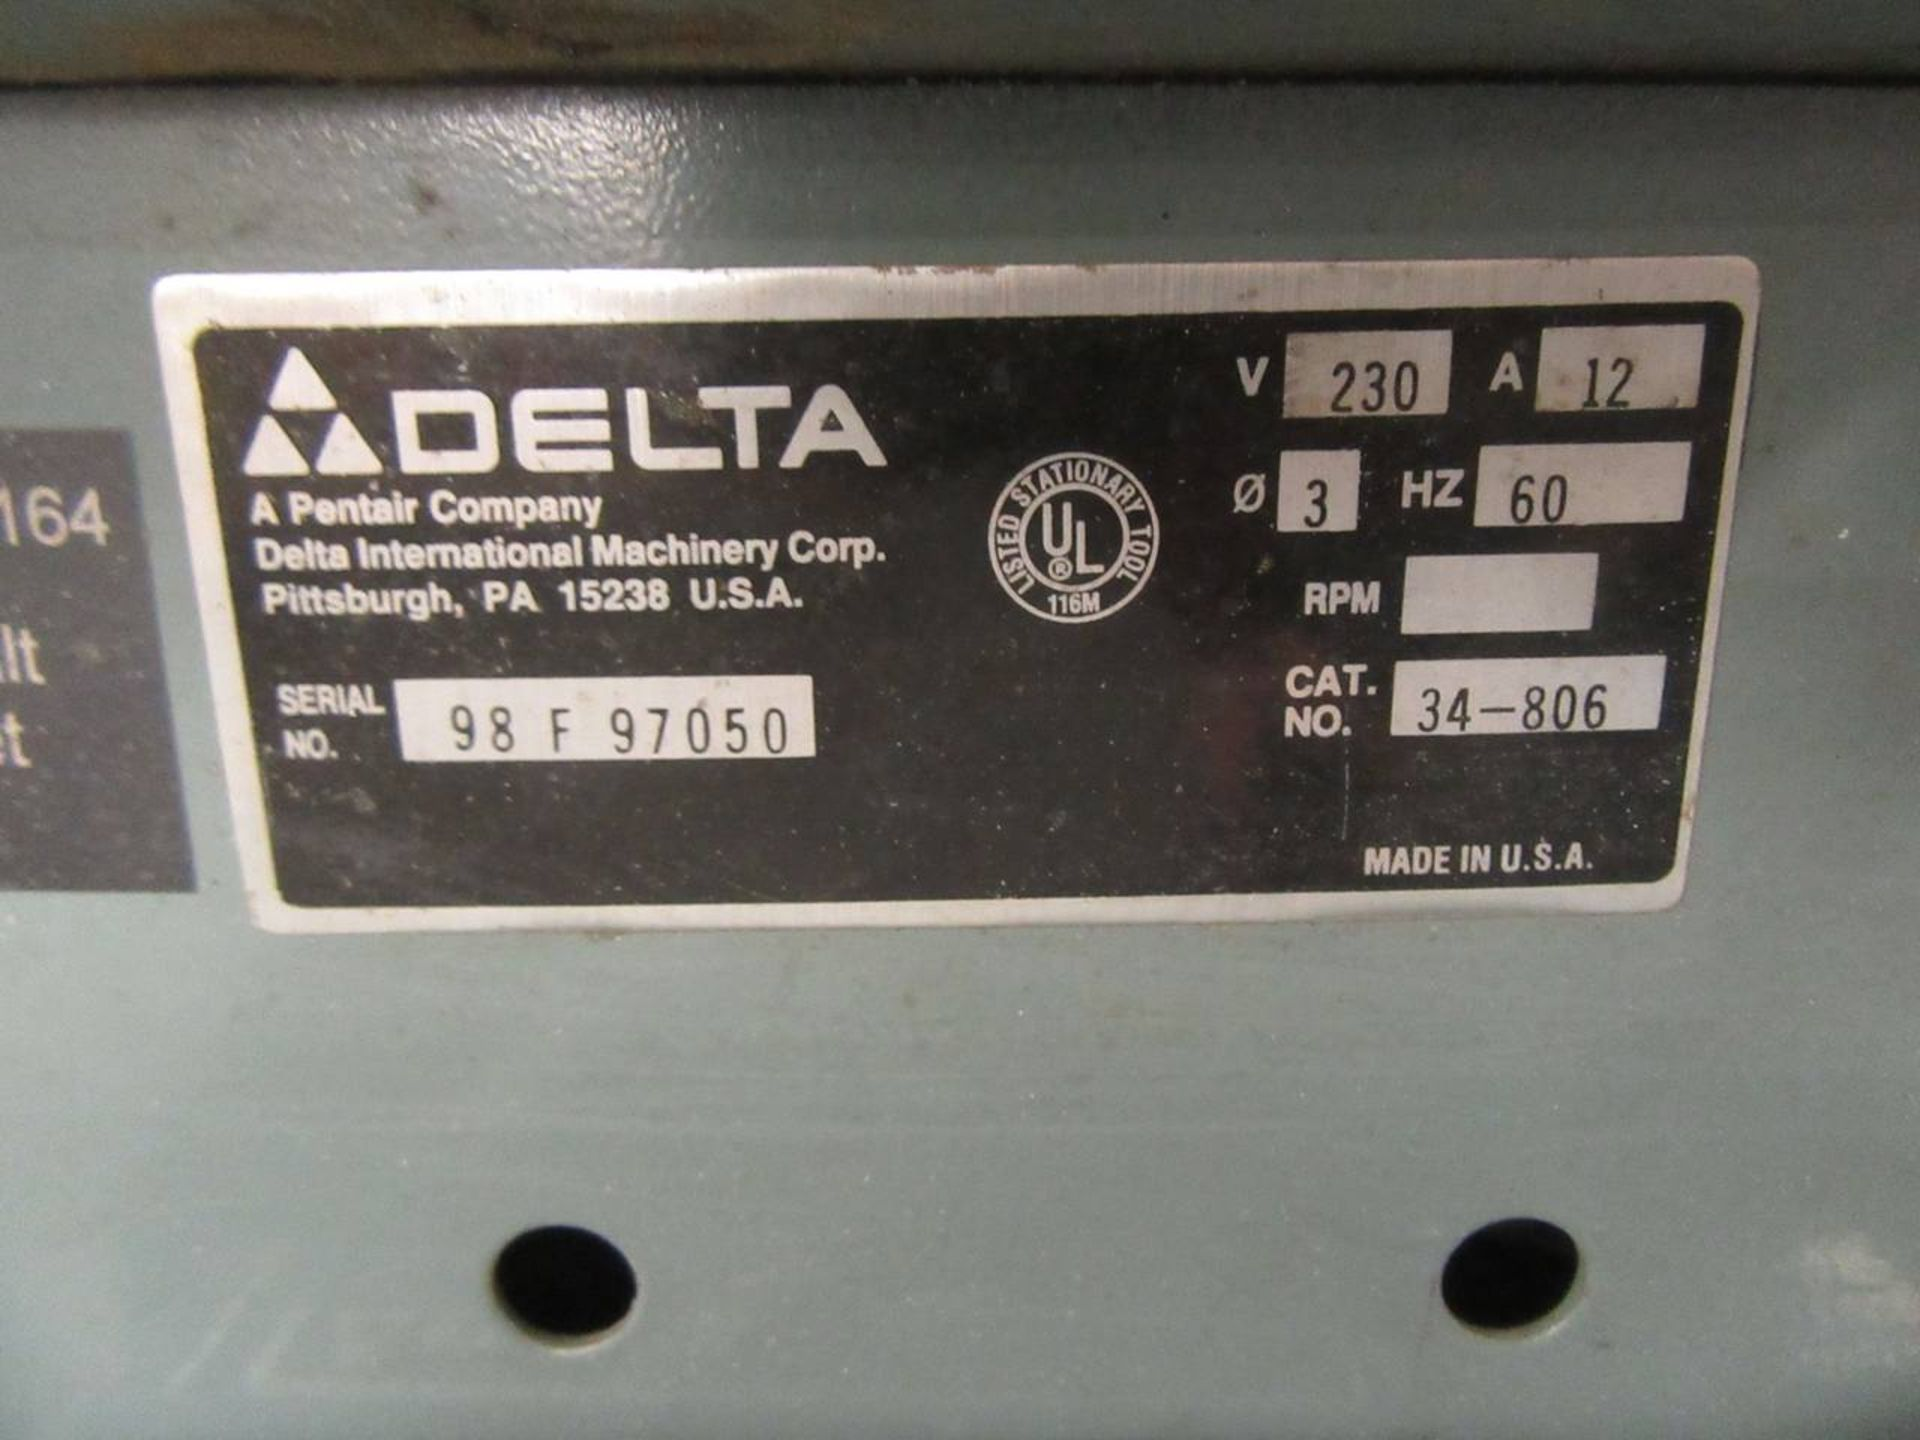 Delta 34-806 Table Saw - Image 4 of 4